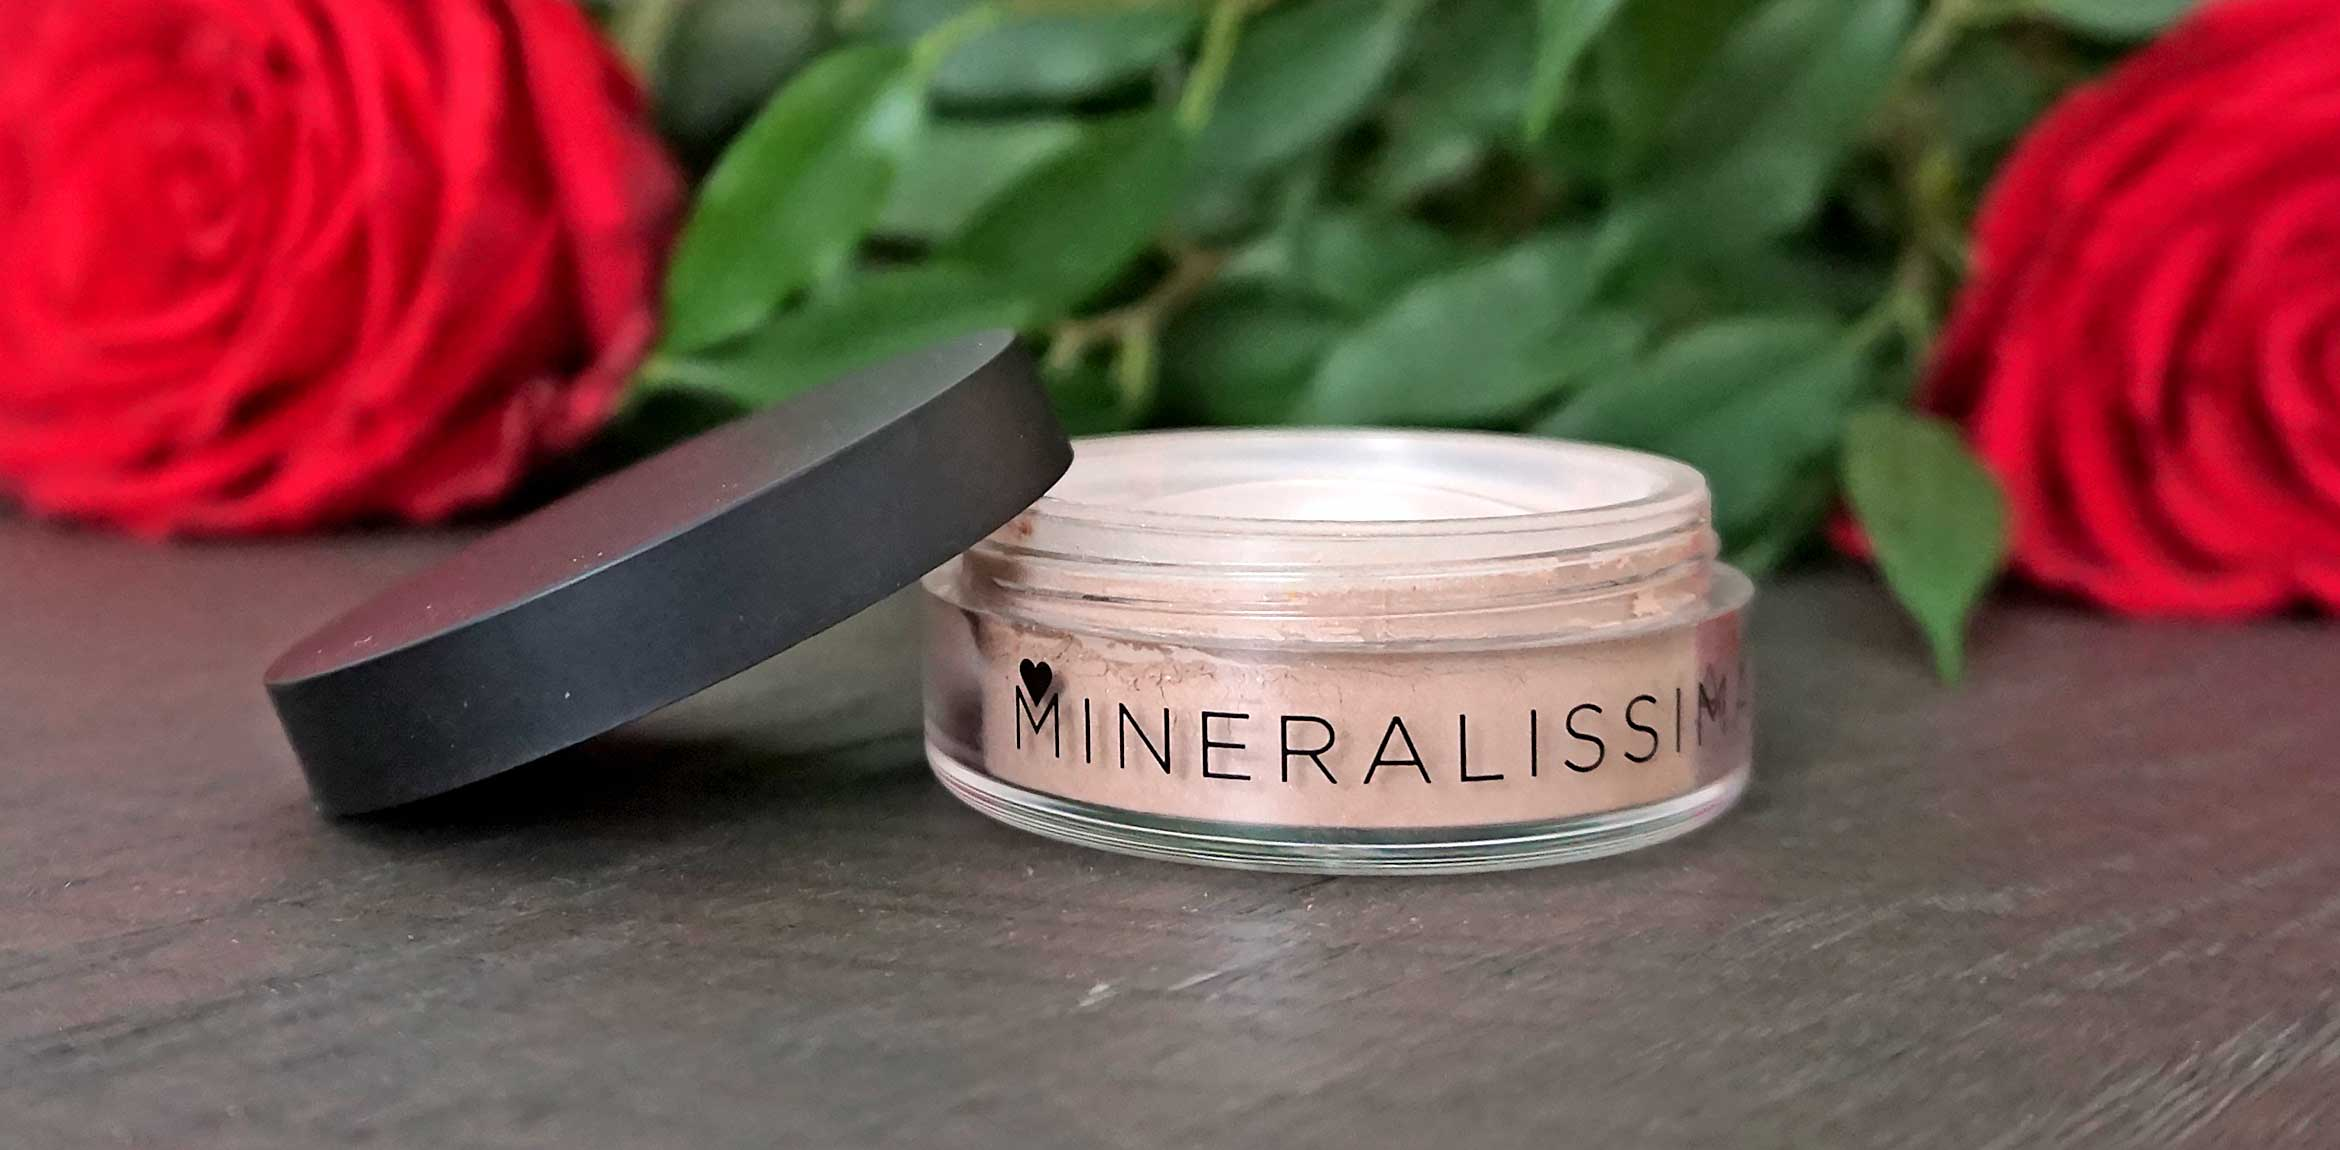 mineralissima minerale bronzer review sunkissed